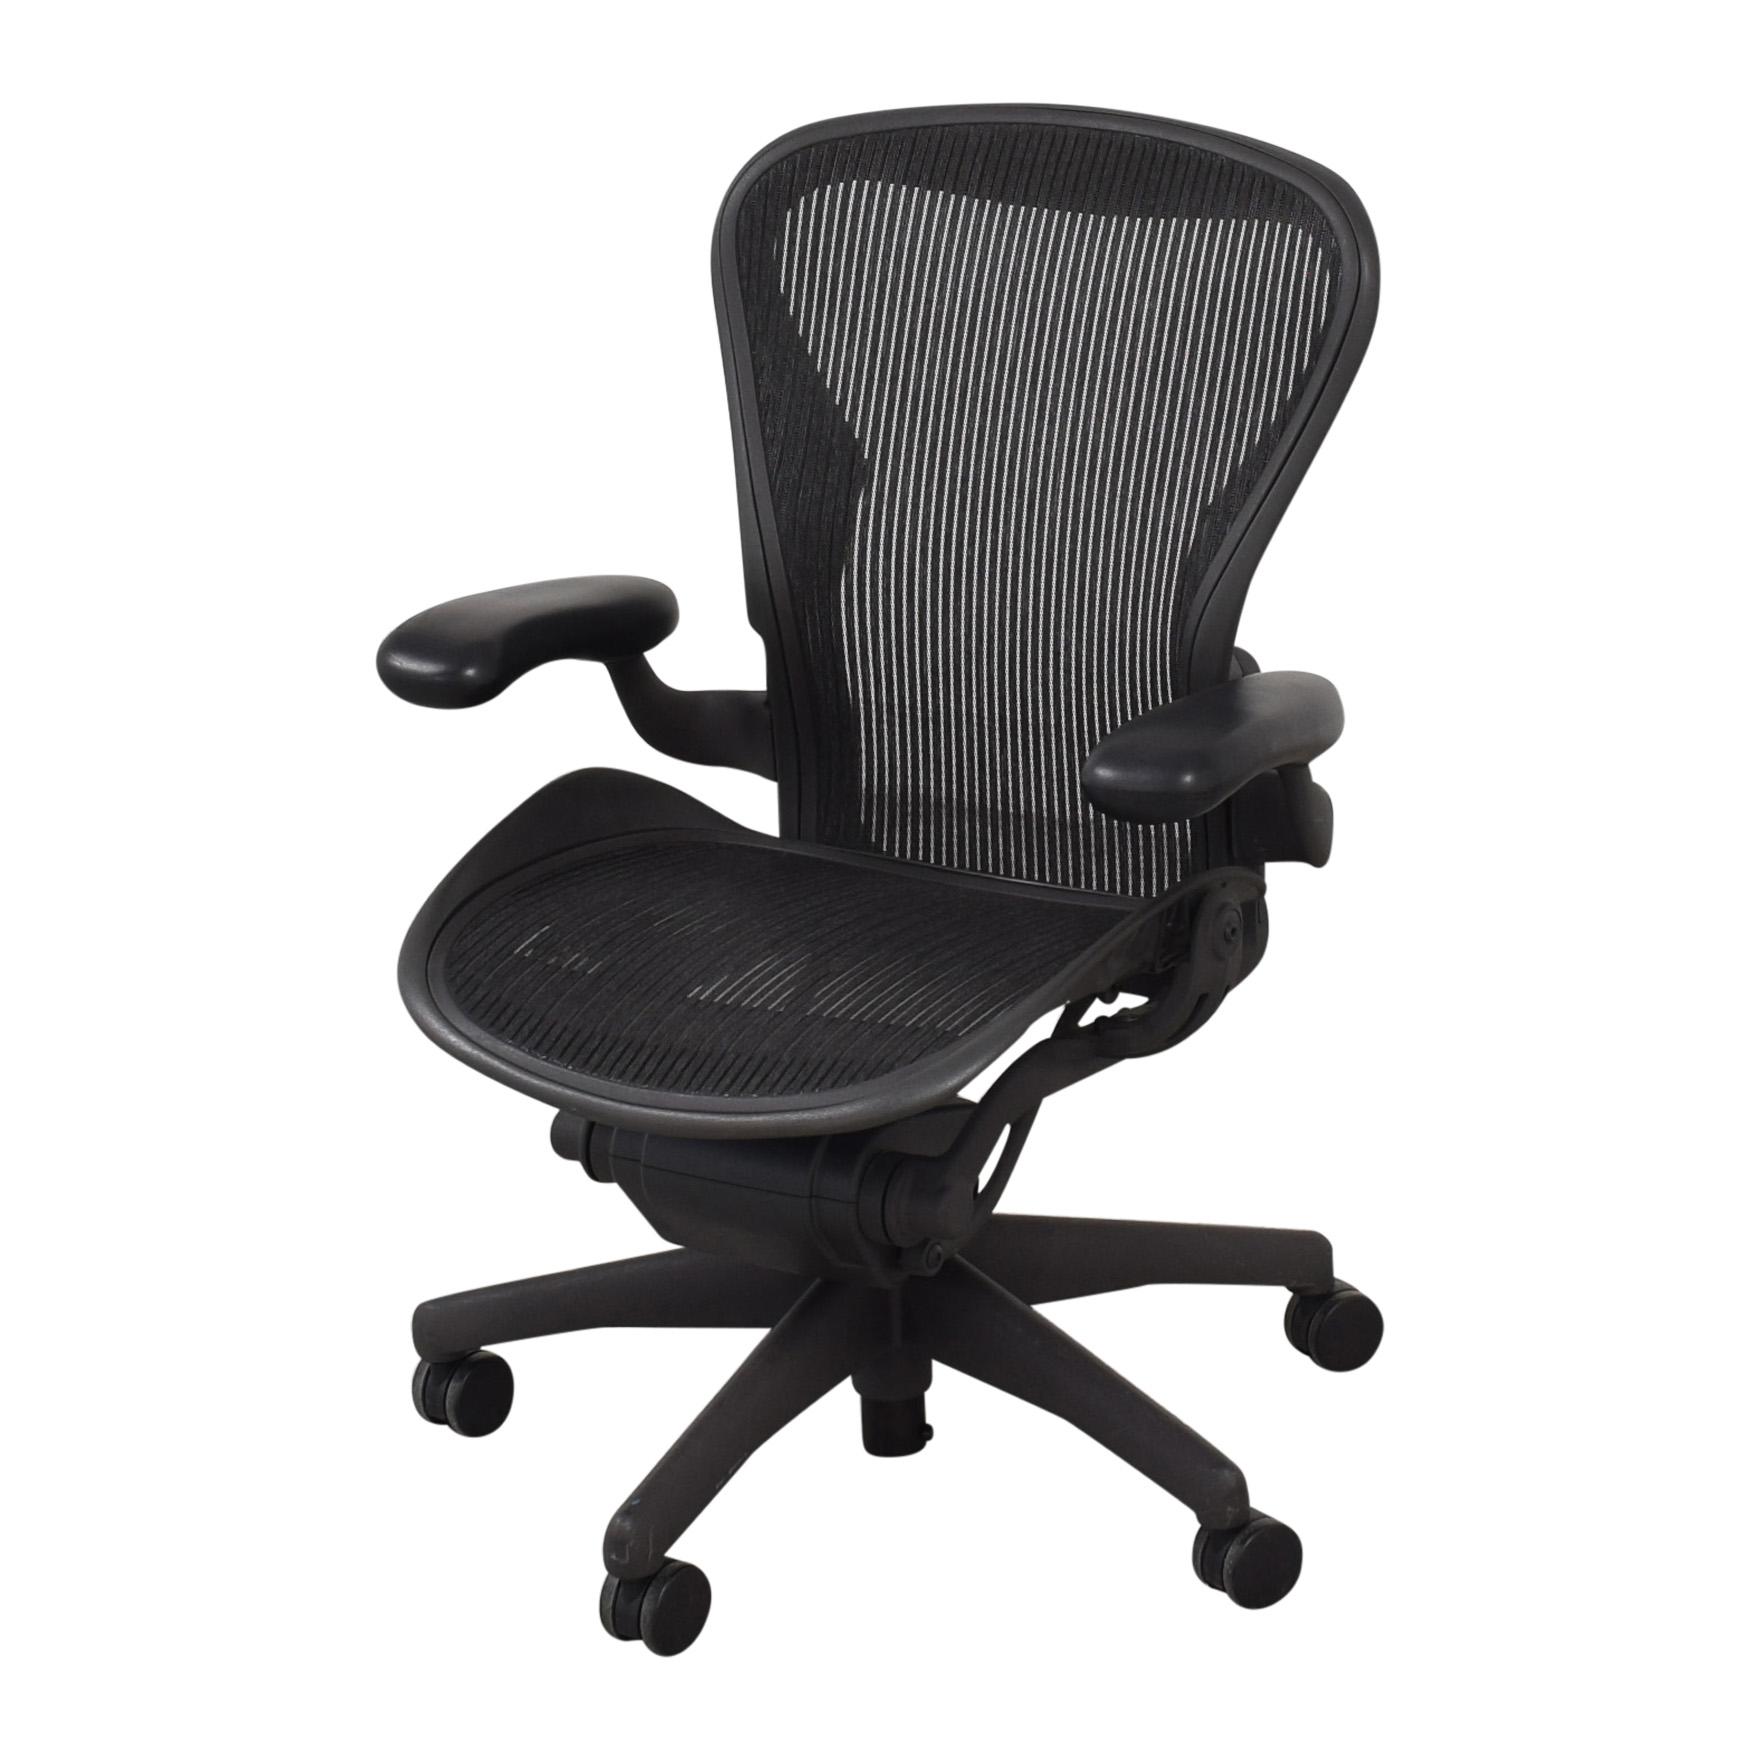 Herman Miller Herman Miller Size B Aeron Chair for sale